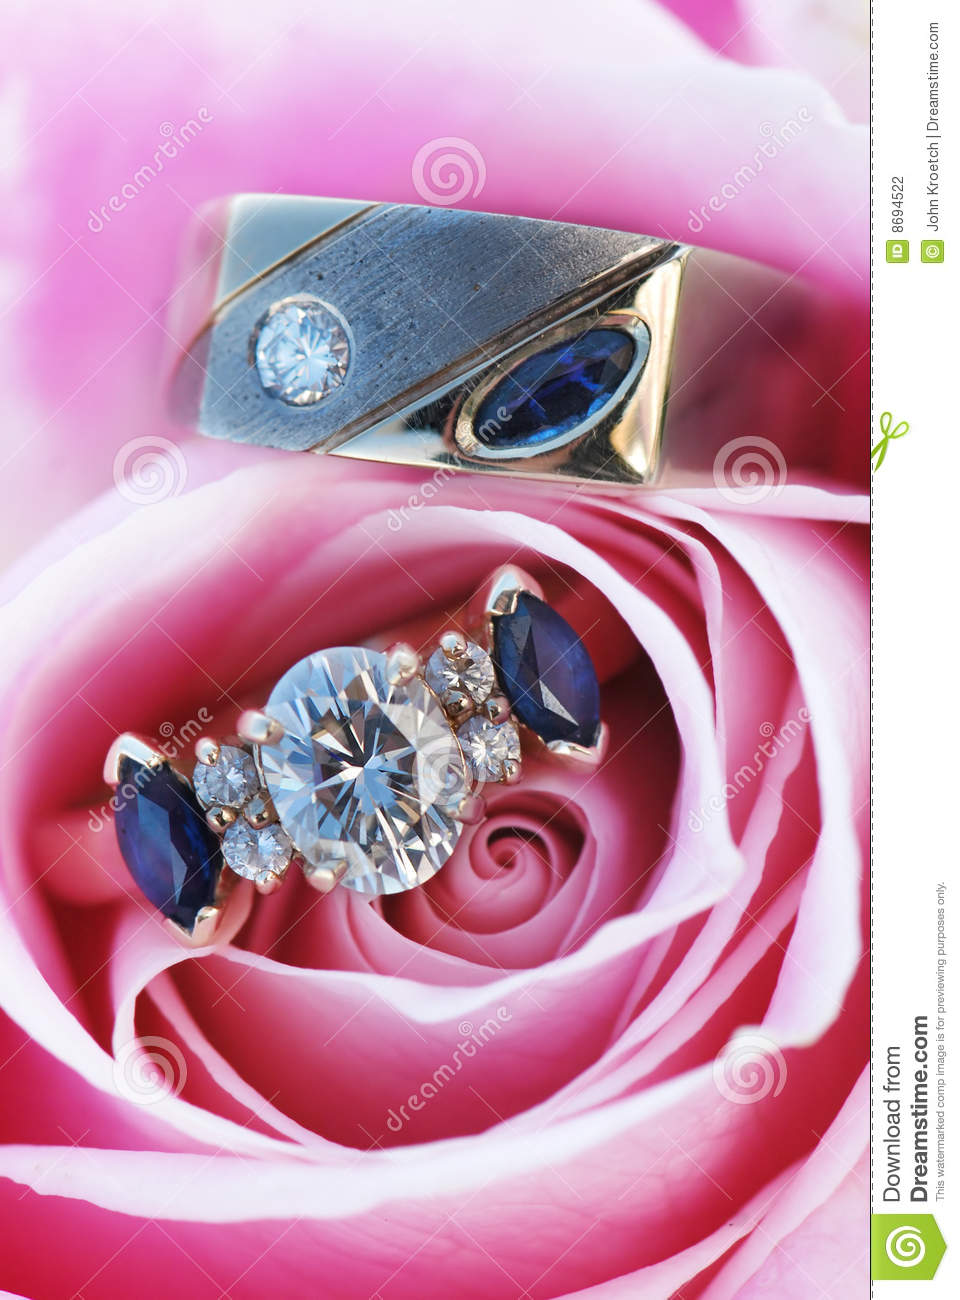 Engagement Rings in Rose stock photo. Image of pink, diamond - 8694522